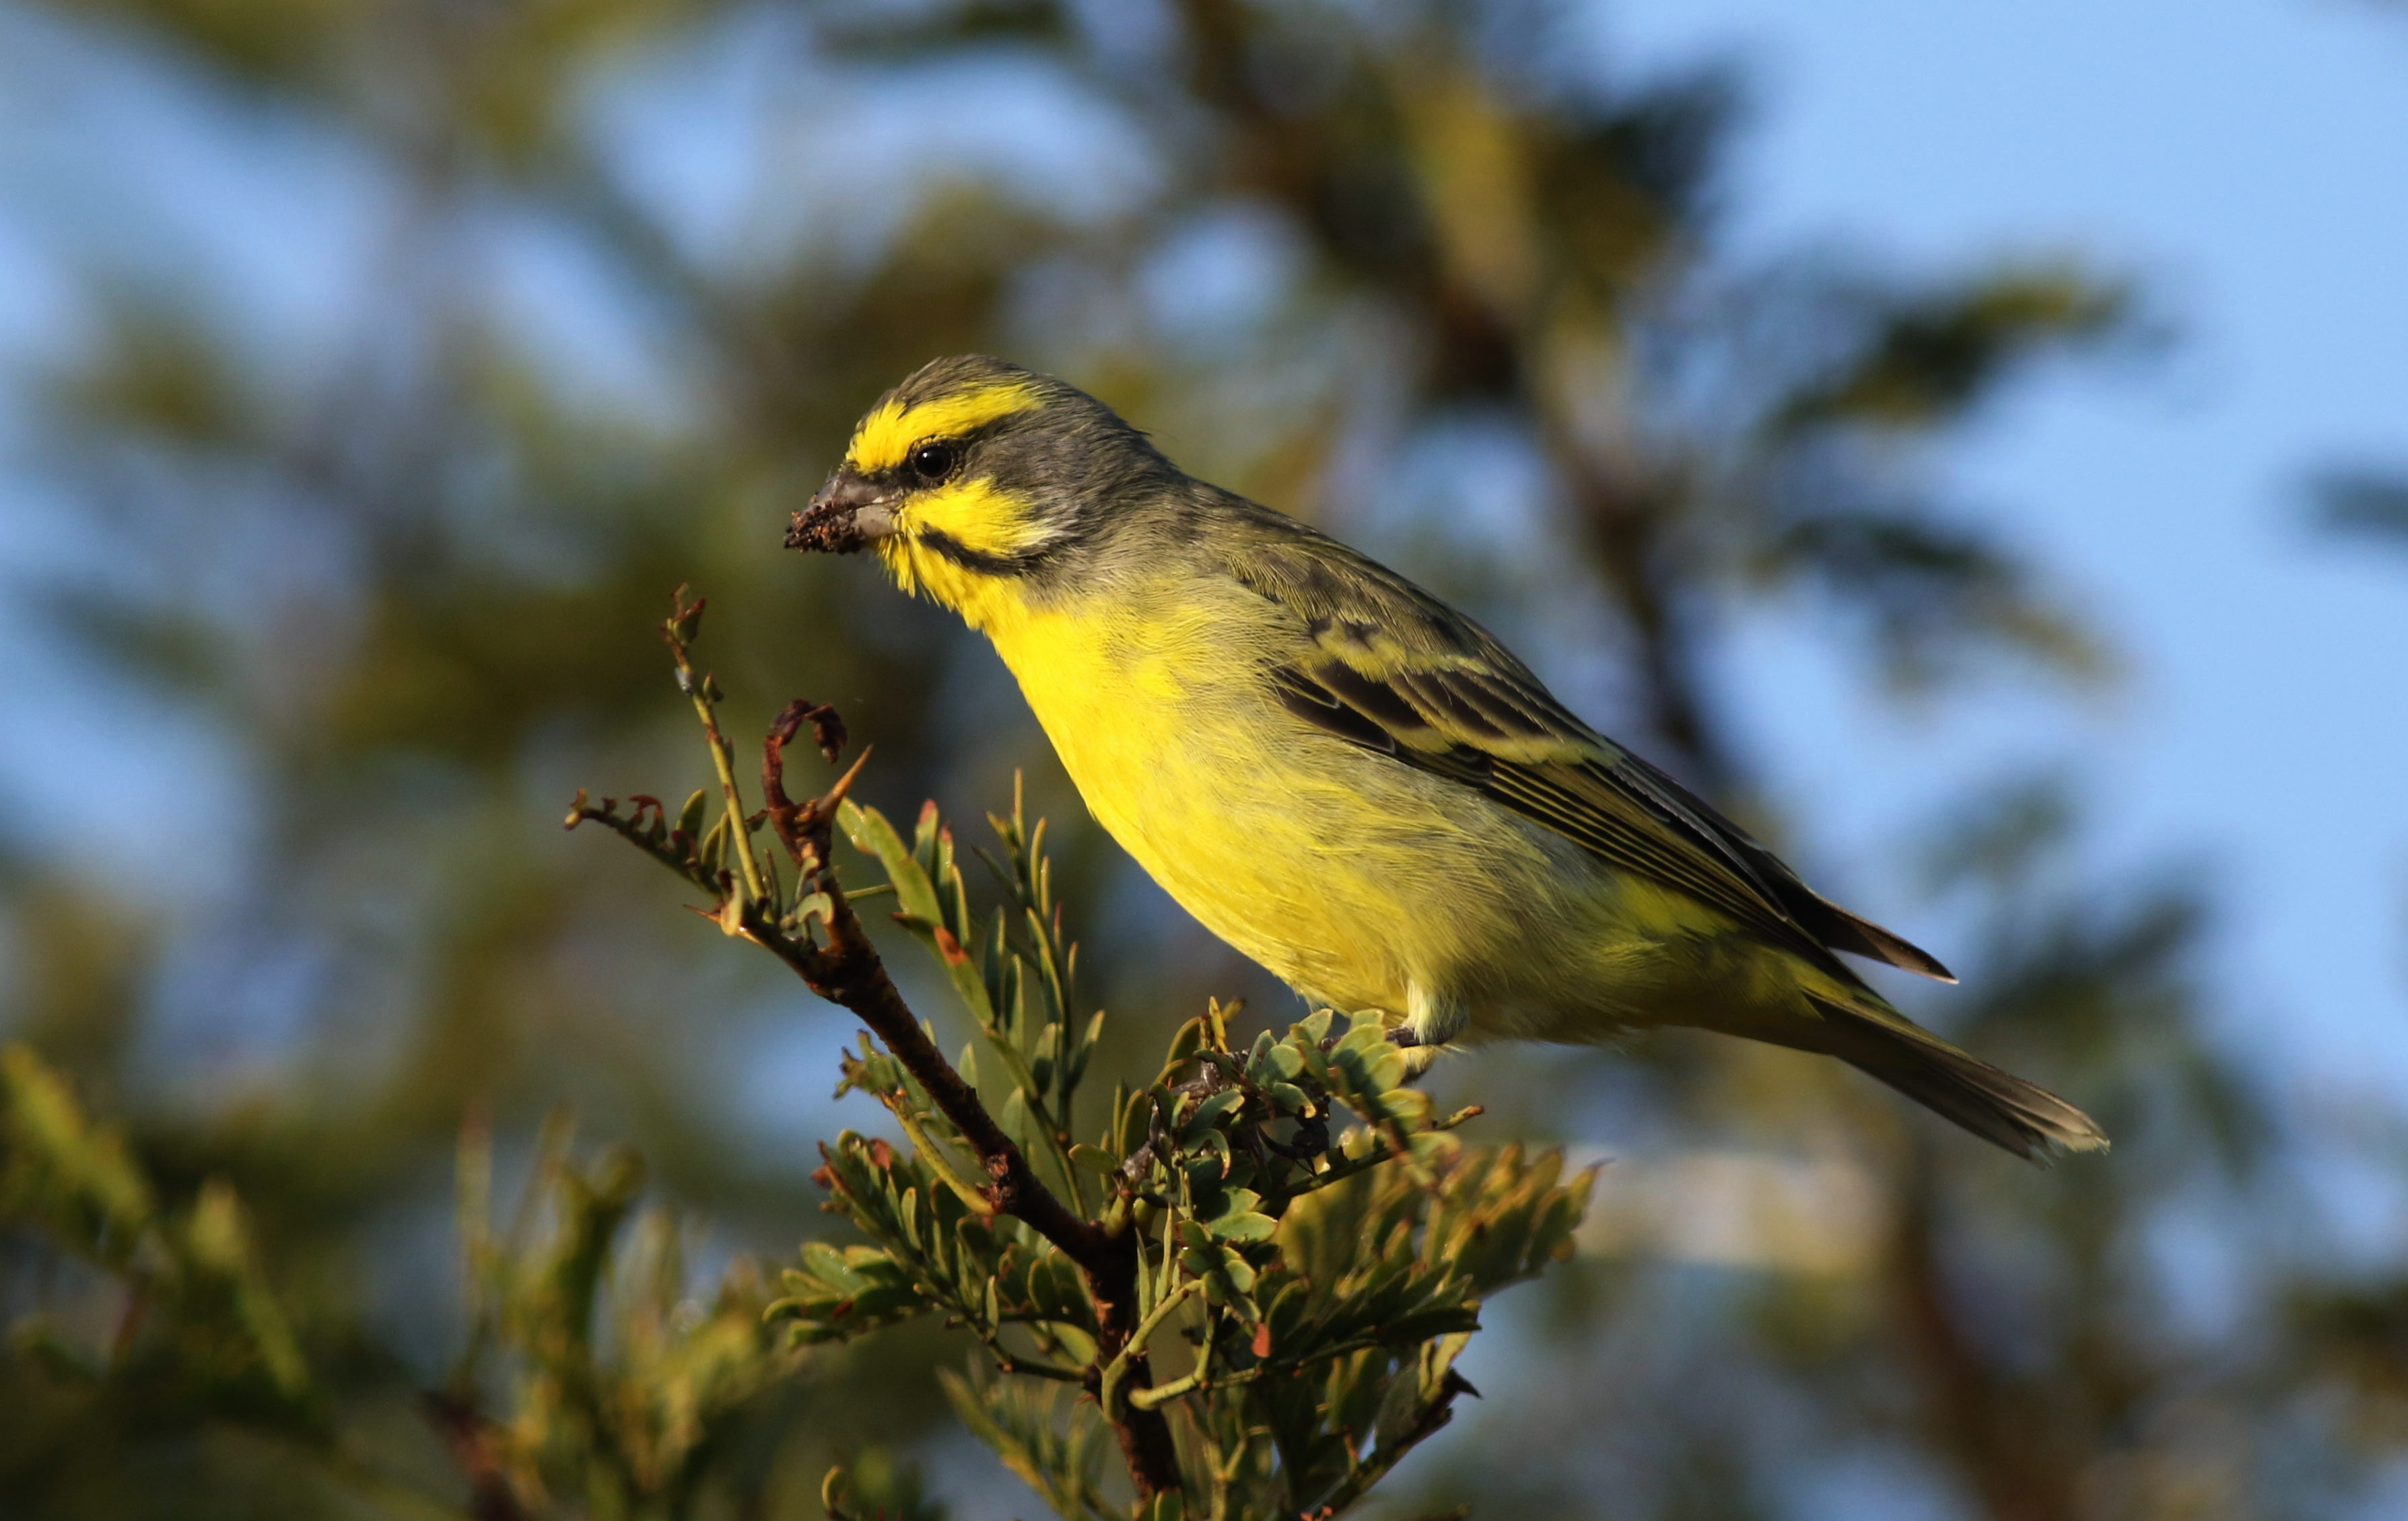 File:Yellow-fronted canary, Crithagra mozambicus, at ...